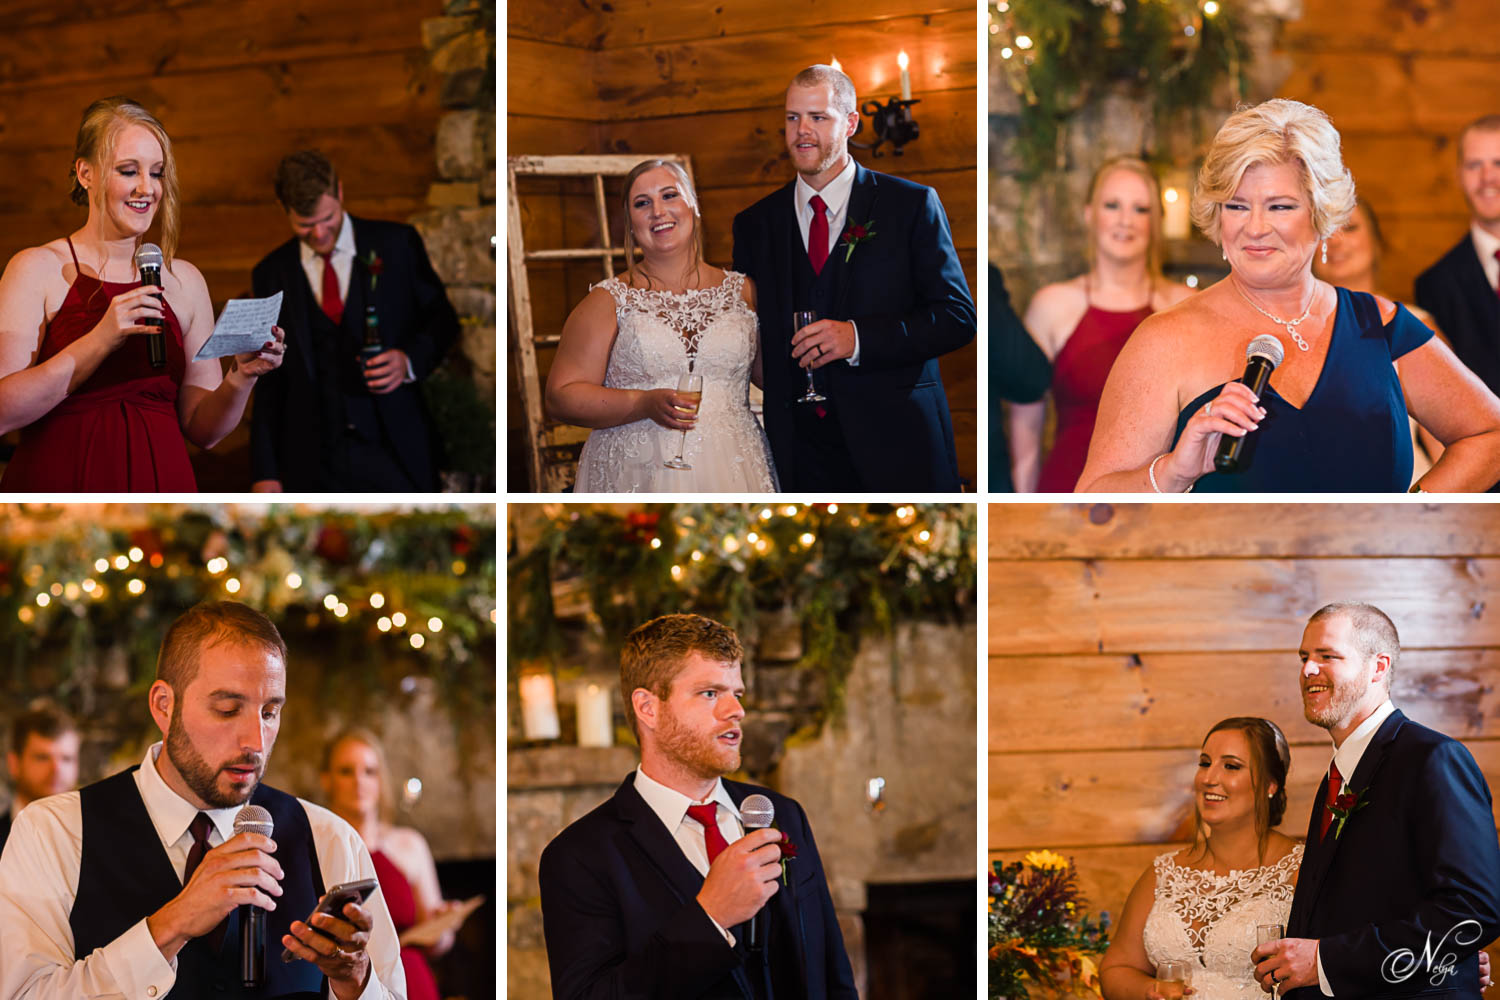 family members giving toasts to the bride and groom in a warm wood interior reception hall with a stone fire place.